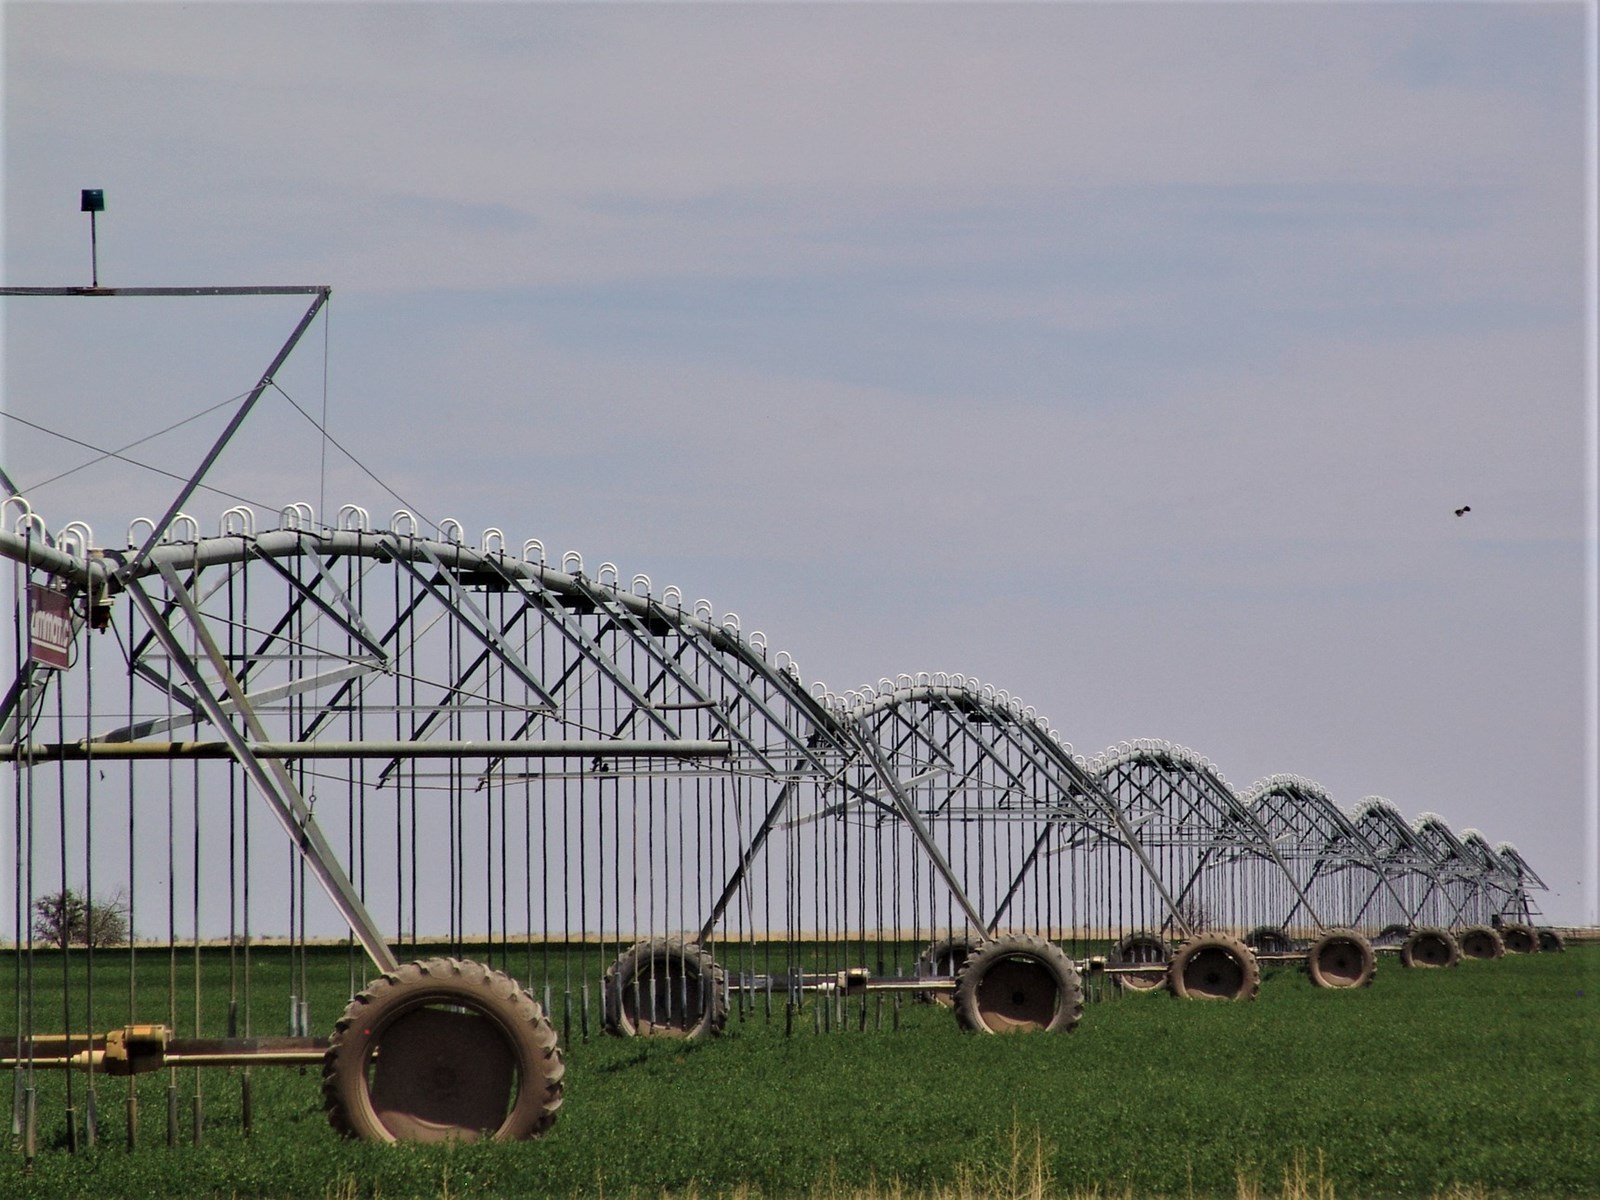 Irrigated Farm for Sale in Southeastern NM, Farm and Ranch